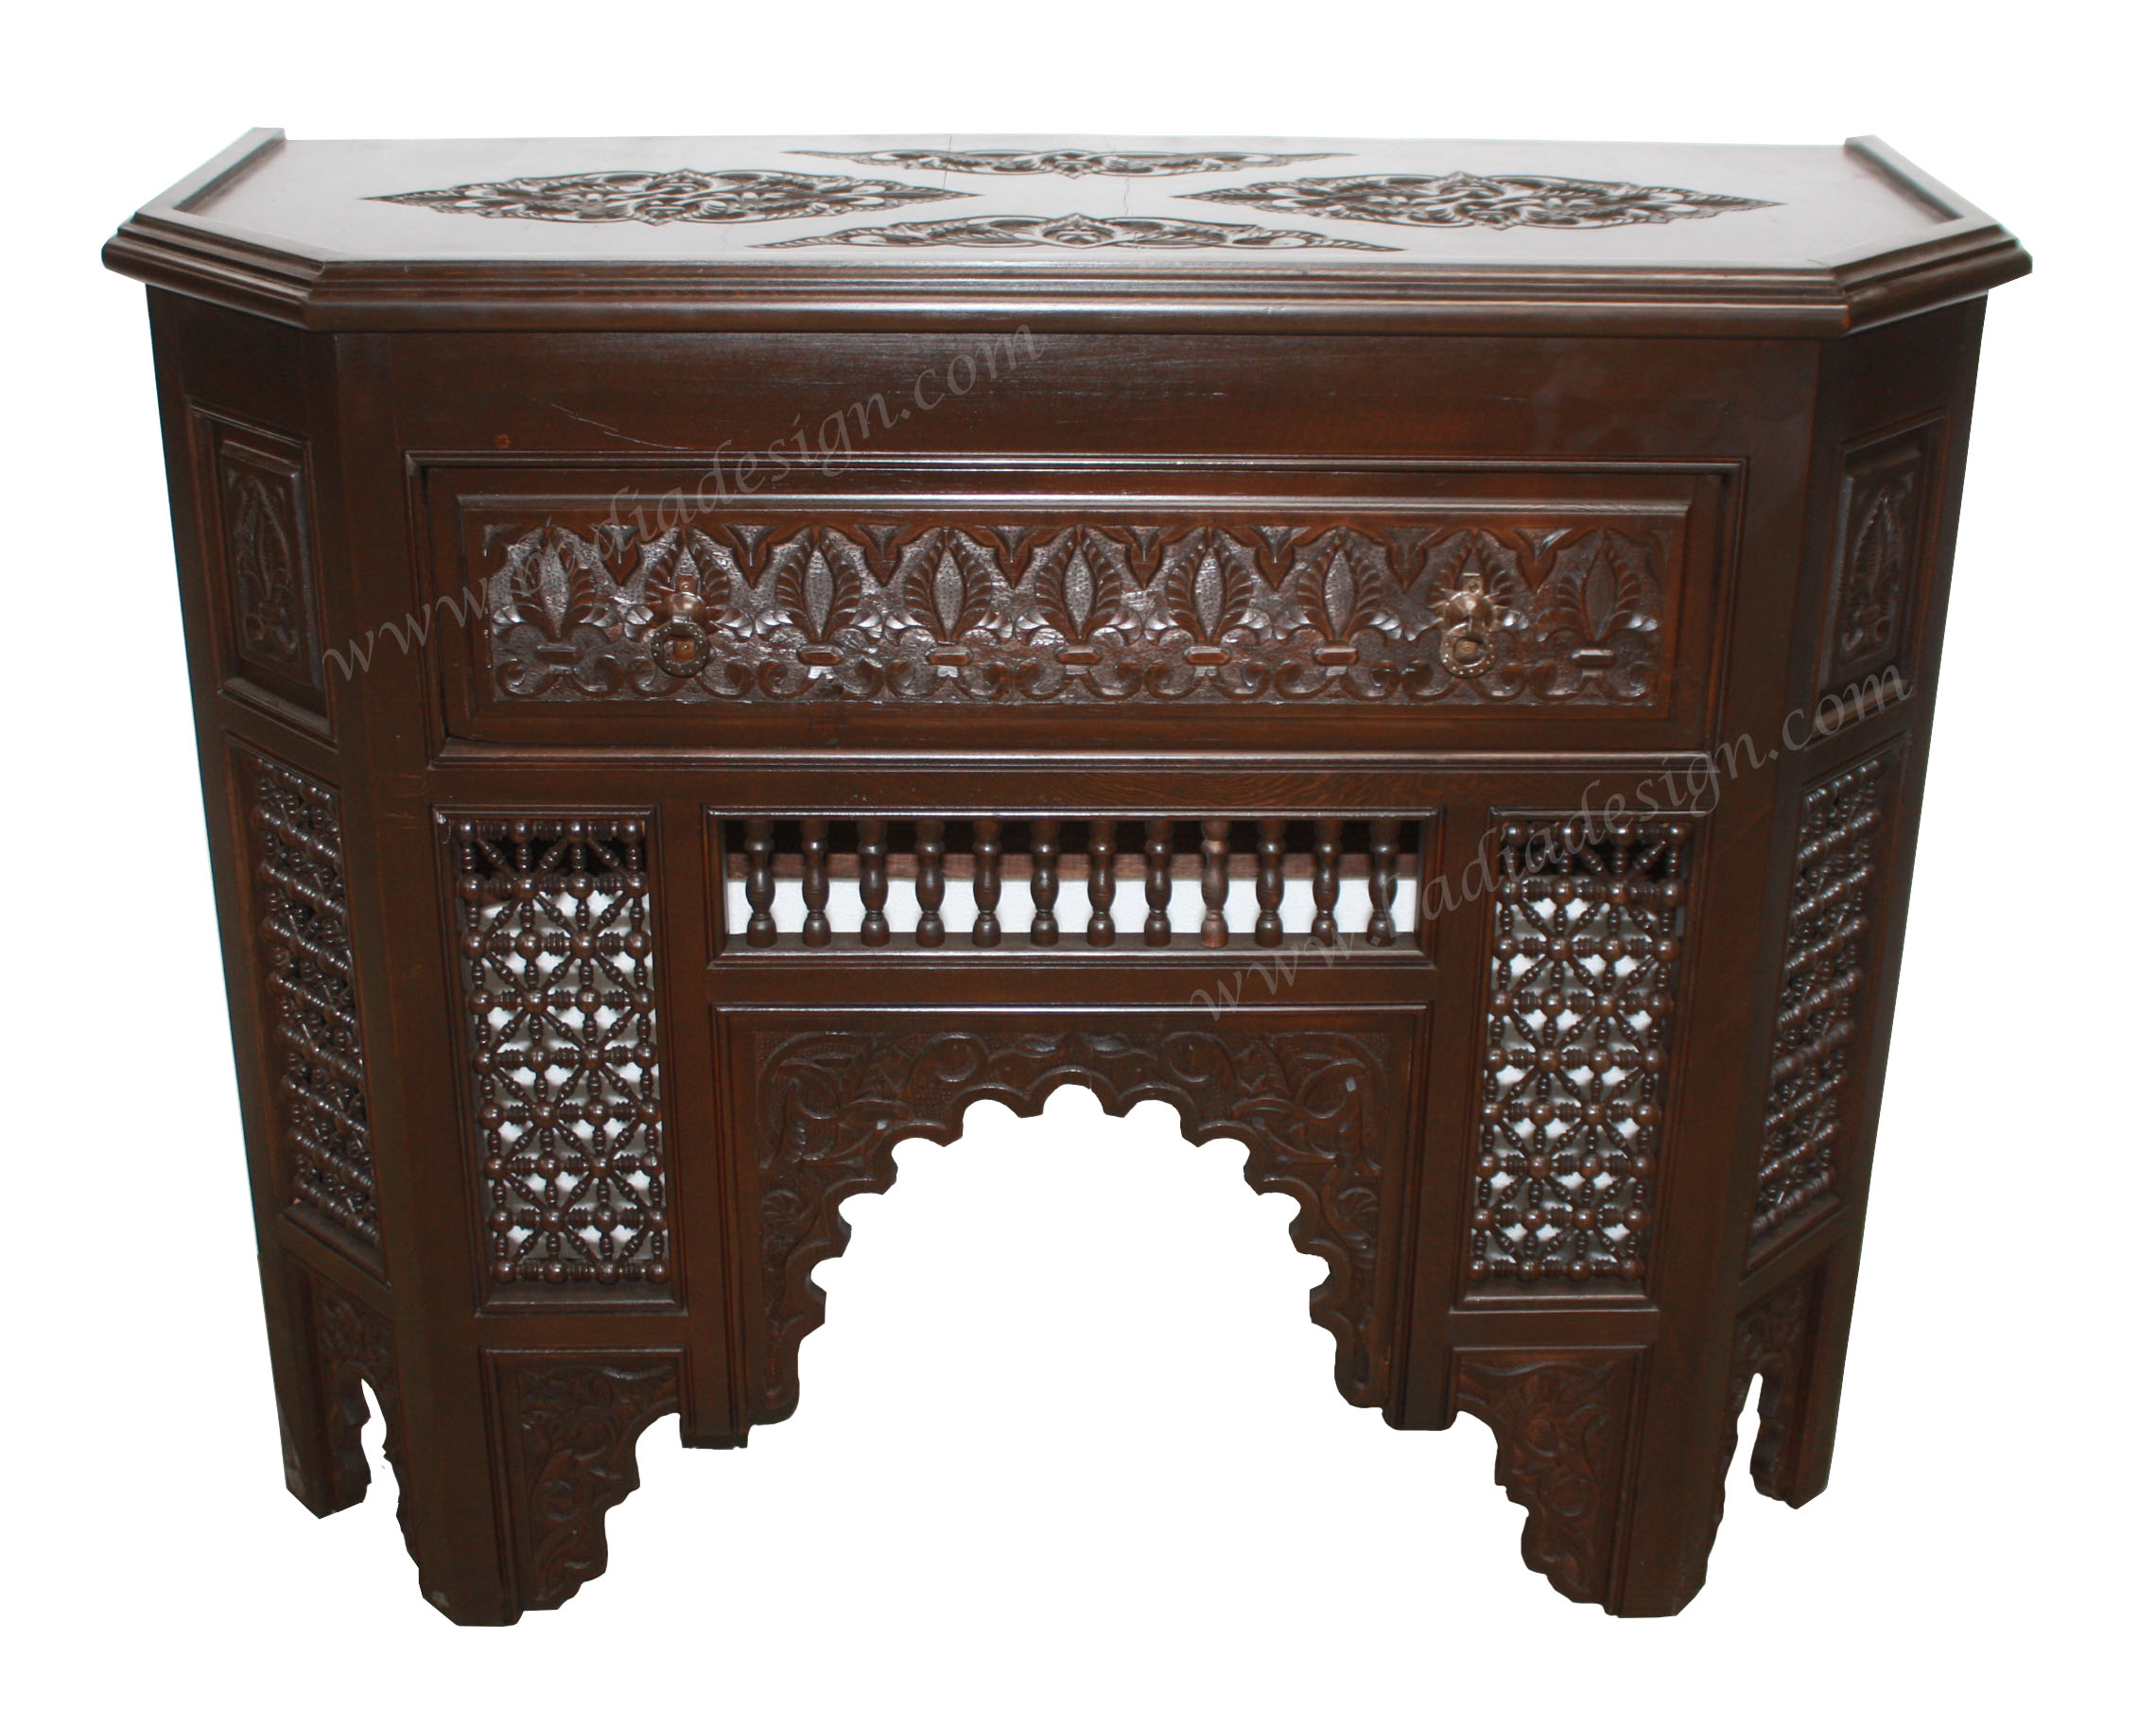 moroccan-dark-stained-wooden-cabinet-cw-ca049-1.jpg